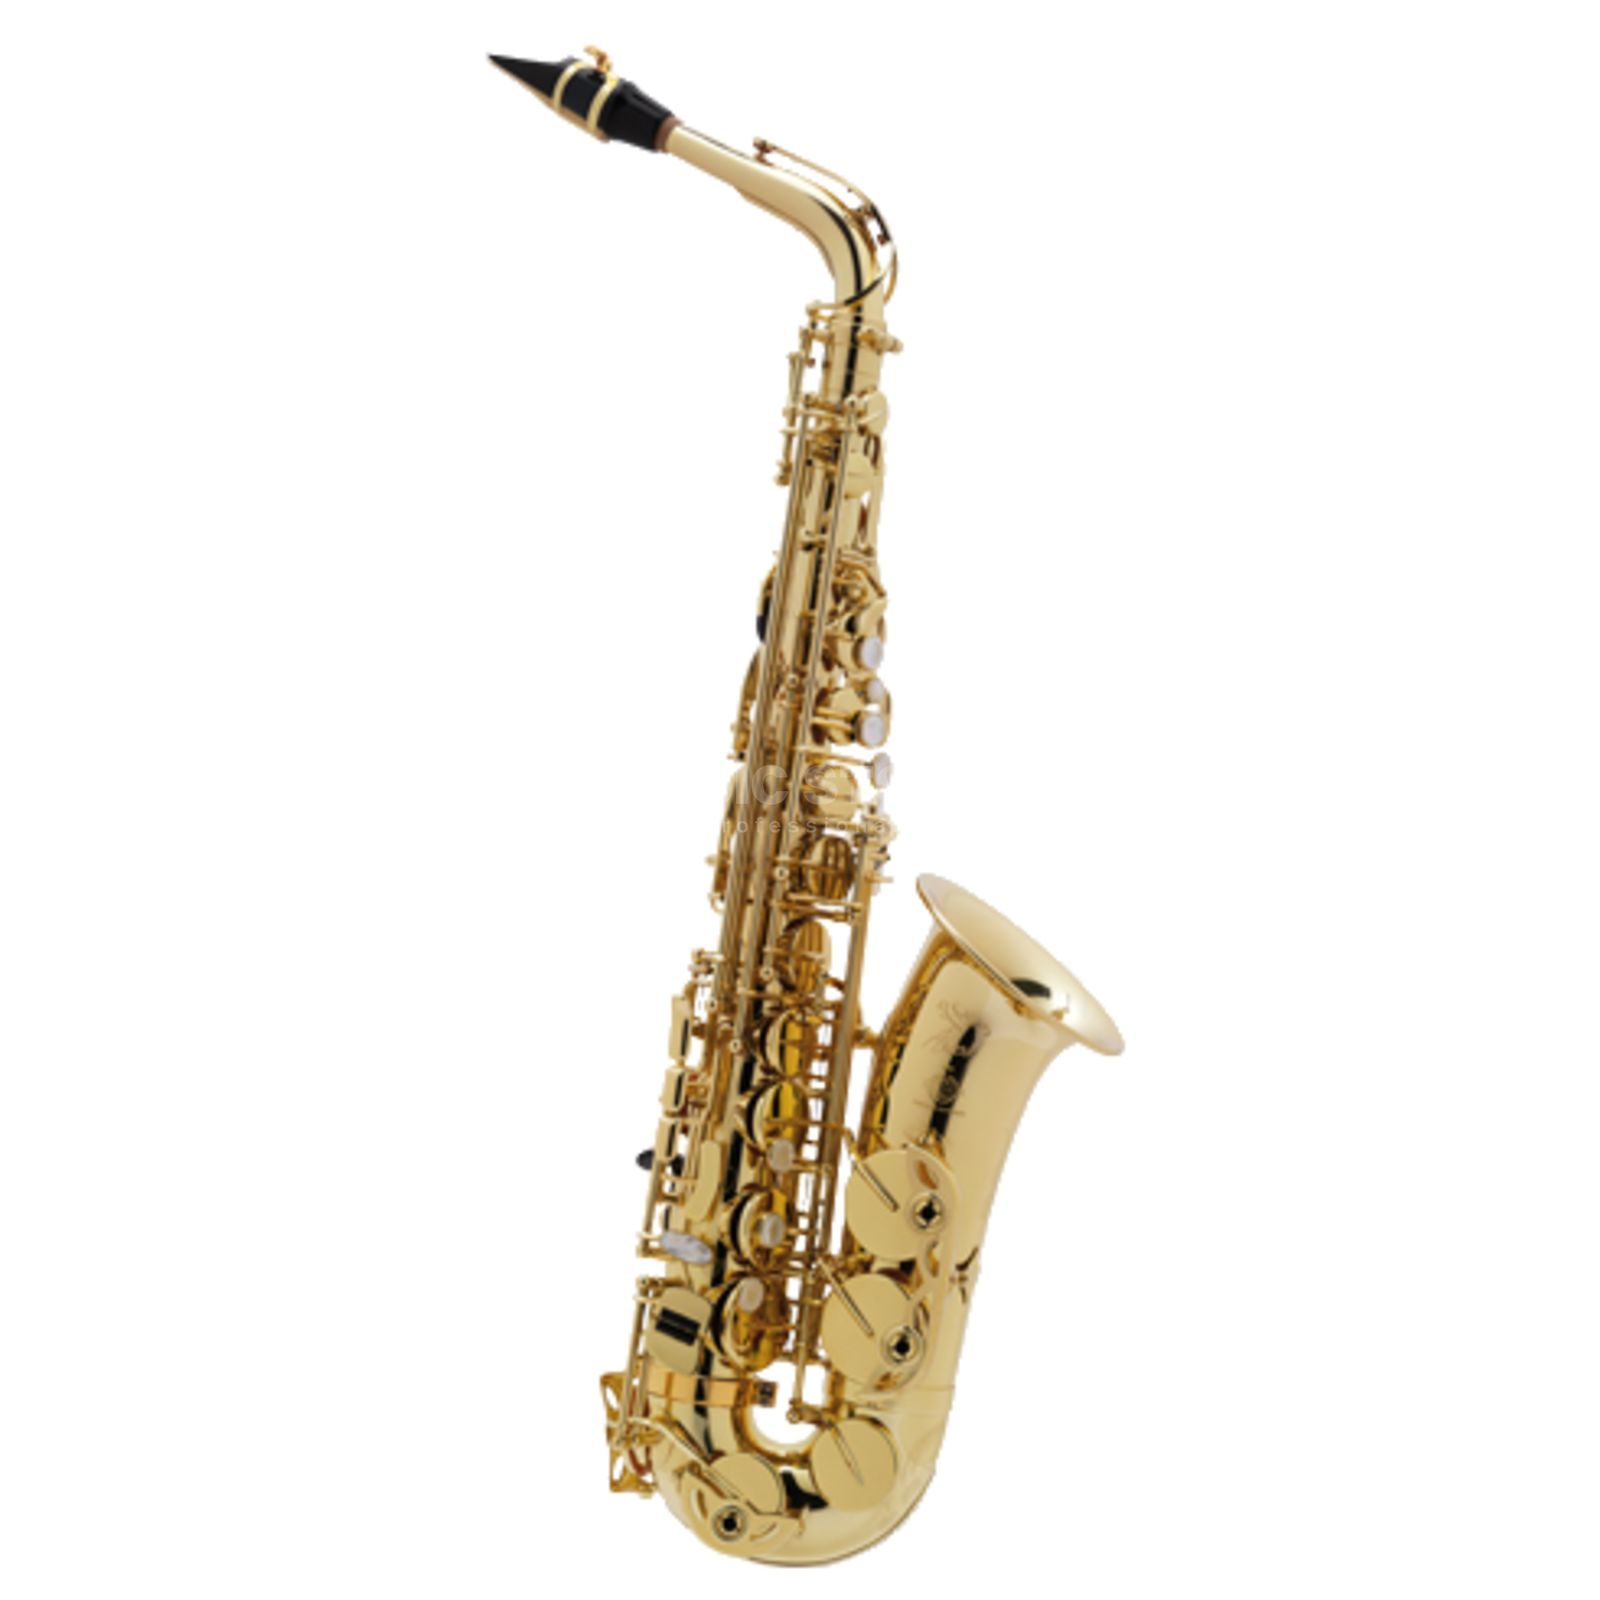 SeleS Axos Eb Alto Saxophone - made by Selmer in France Product Image